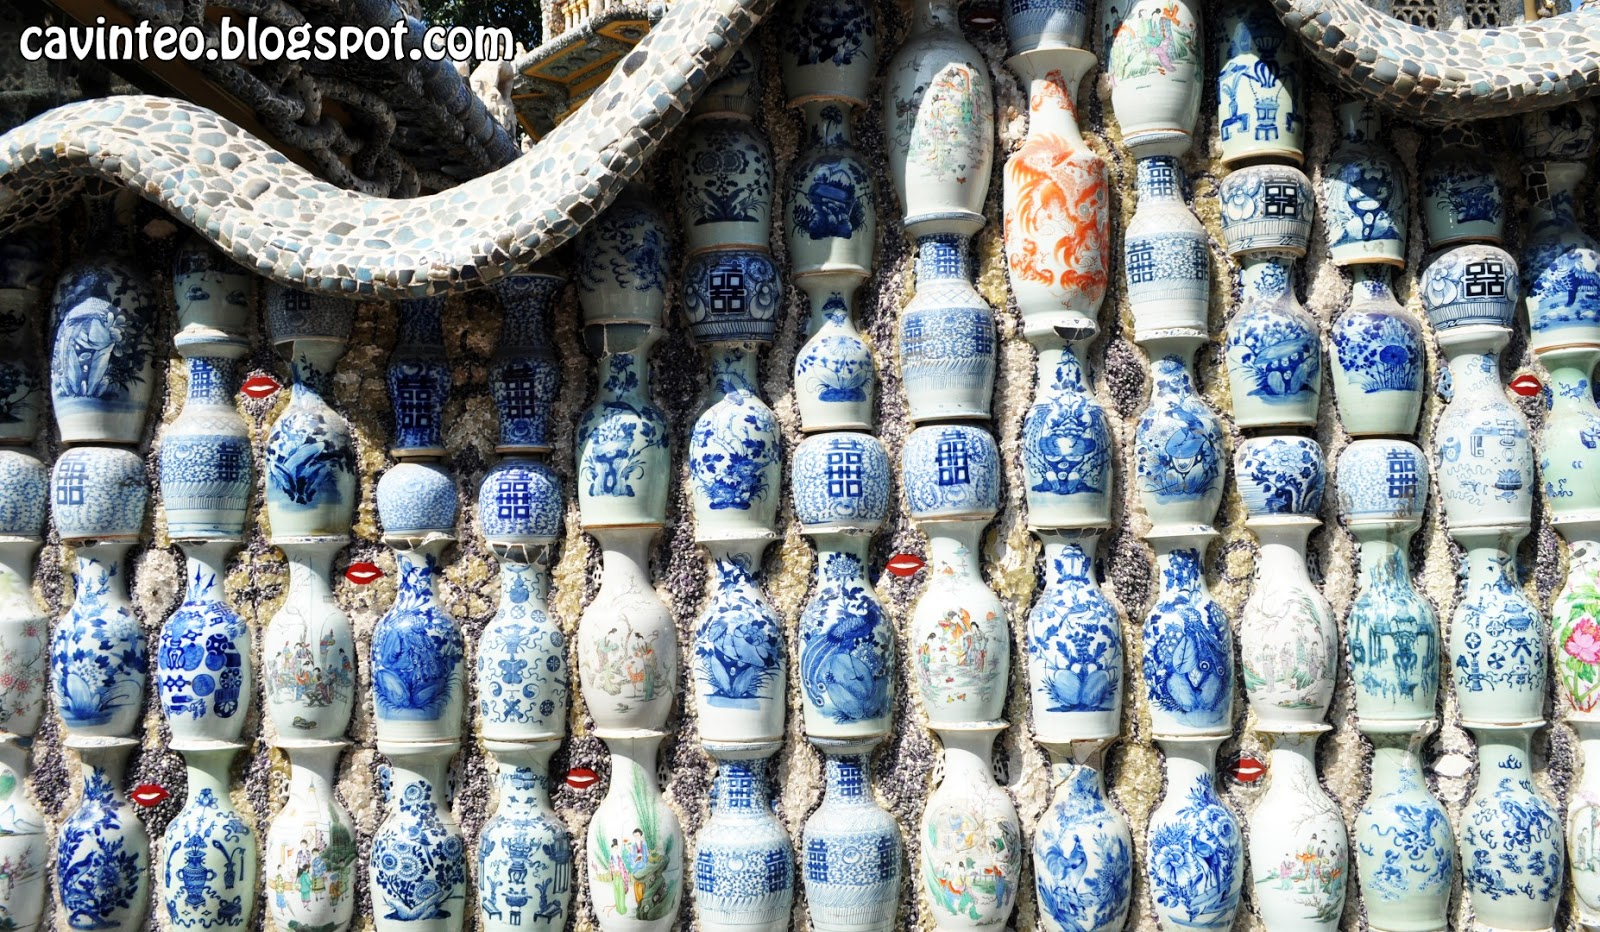 Entree kibbles china house museum famous porcelain house according to our local guide tianjin was established as a trading port a long time ago and starting from the ming dynasty porcelain wares for the imperial reviewsmspy